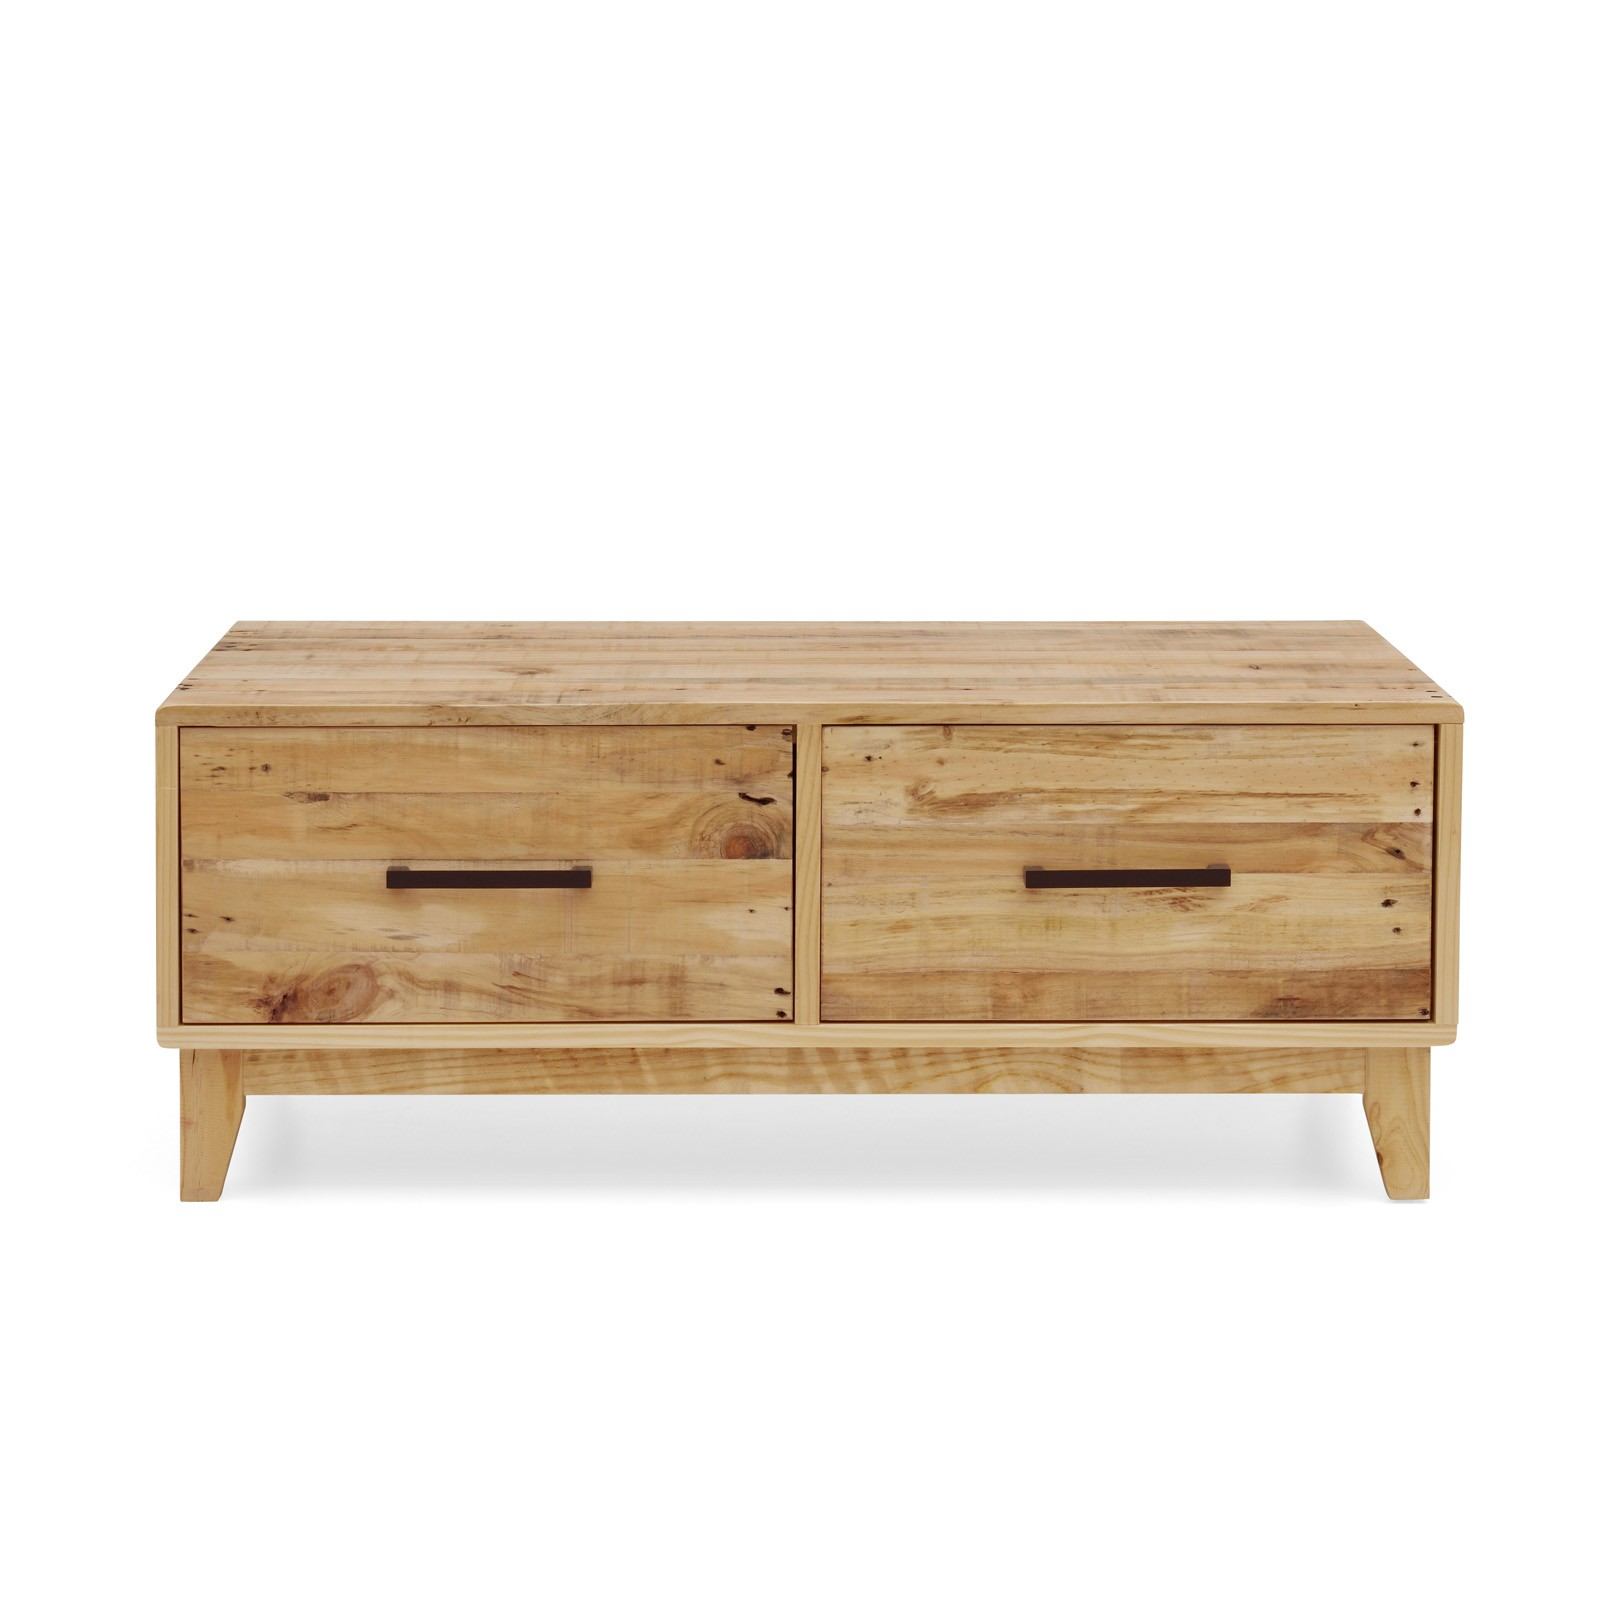 Storage Coffee Table Pine: Portland Solid Recycled Pine Timber Coffee Table